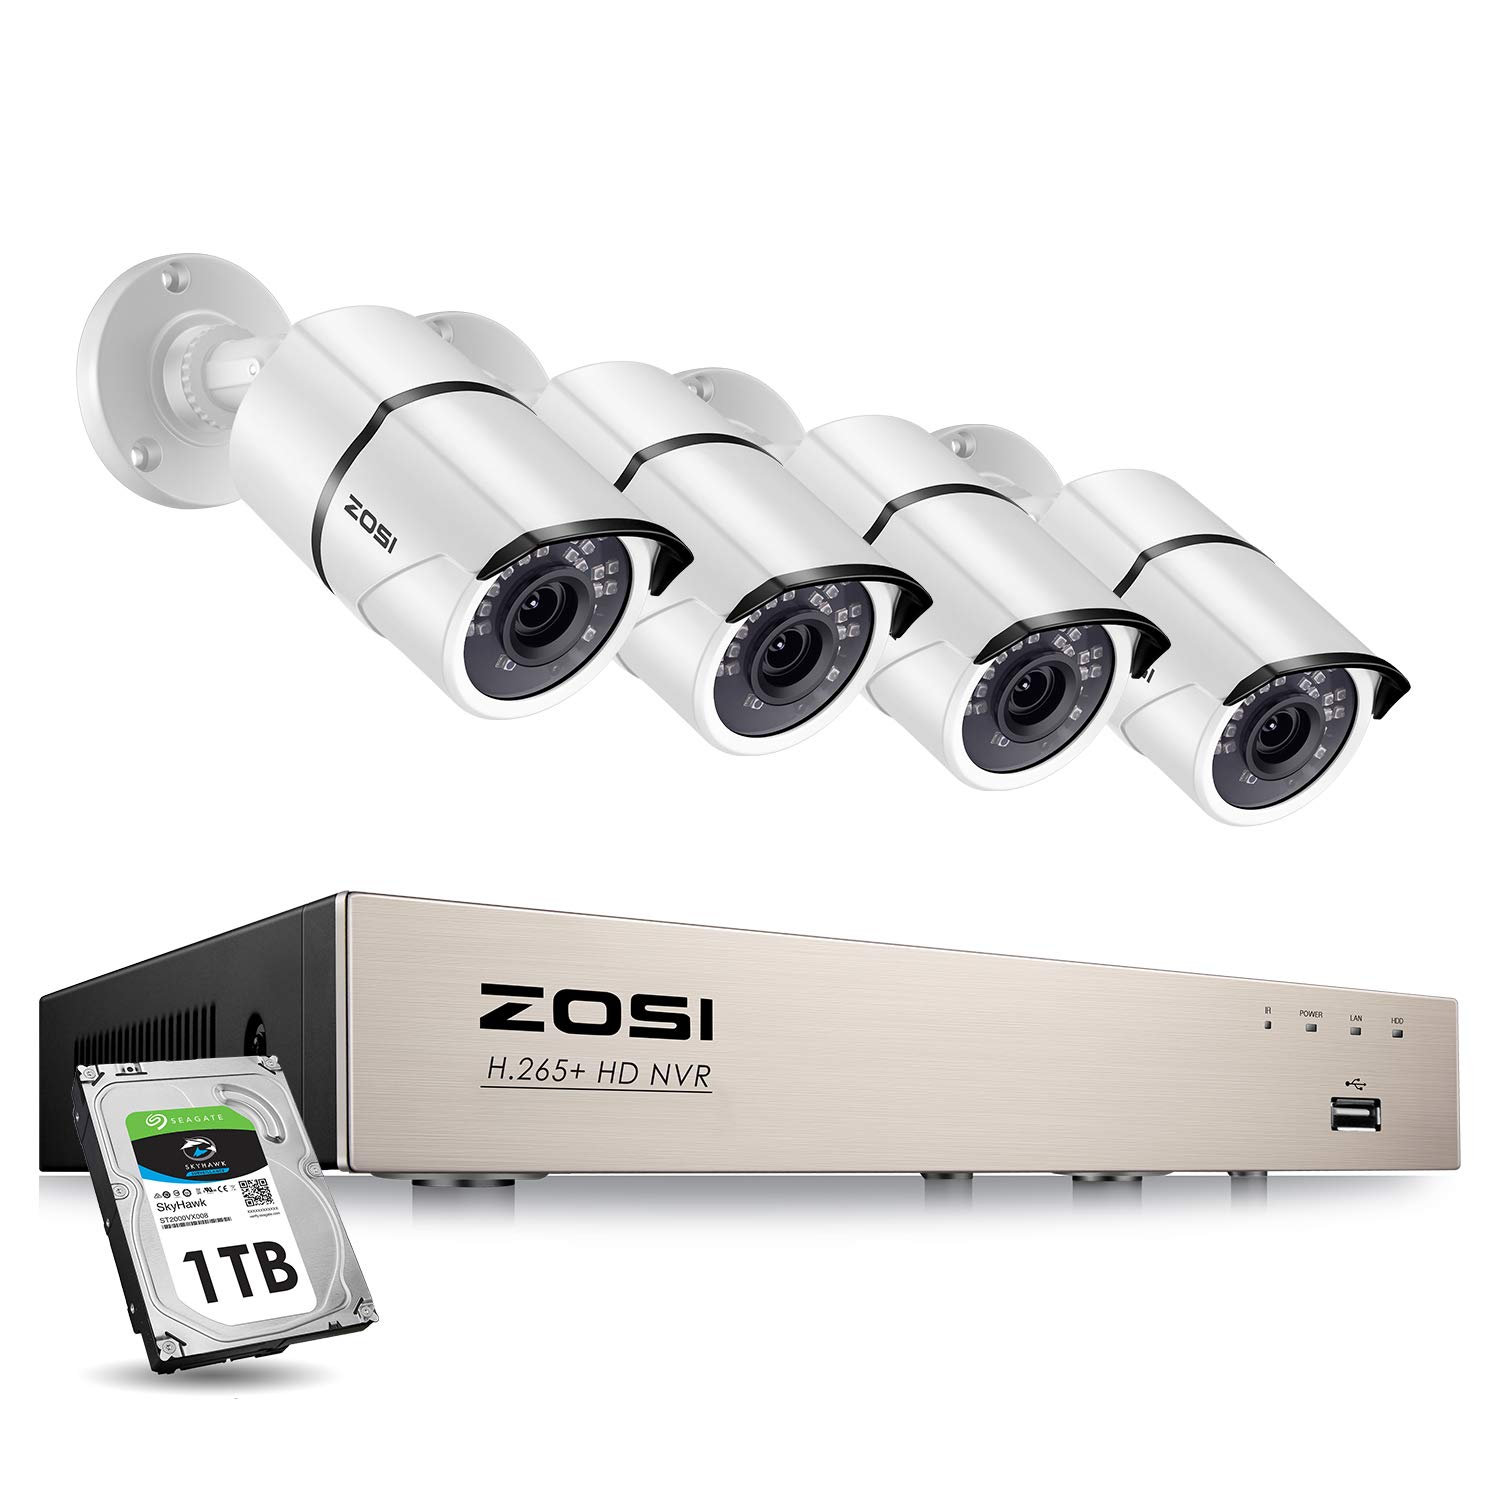 ZOSI H.265+ 8CH PoE Home Security Camera System Outdoor,5MP 8 Channel CCTV NVR Recorder with 1TB Hard Drive,4pcs HD 1080P Surveillance Weatherproof Bullet IP Camera with 100ft Long Night Vision